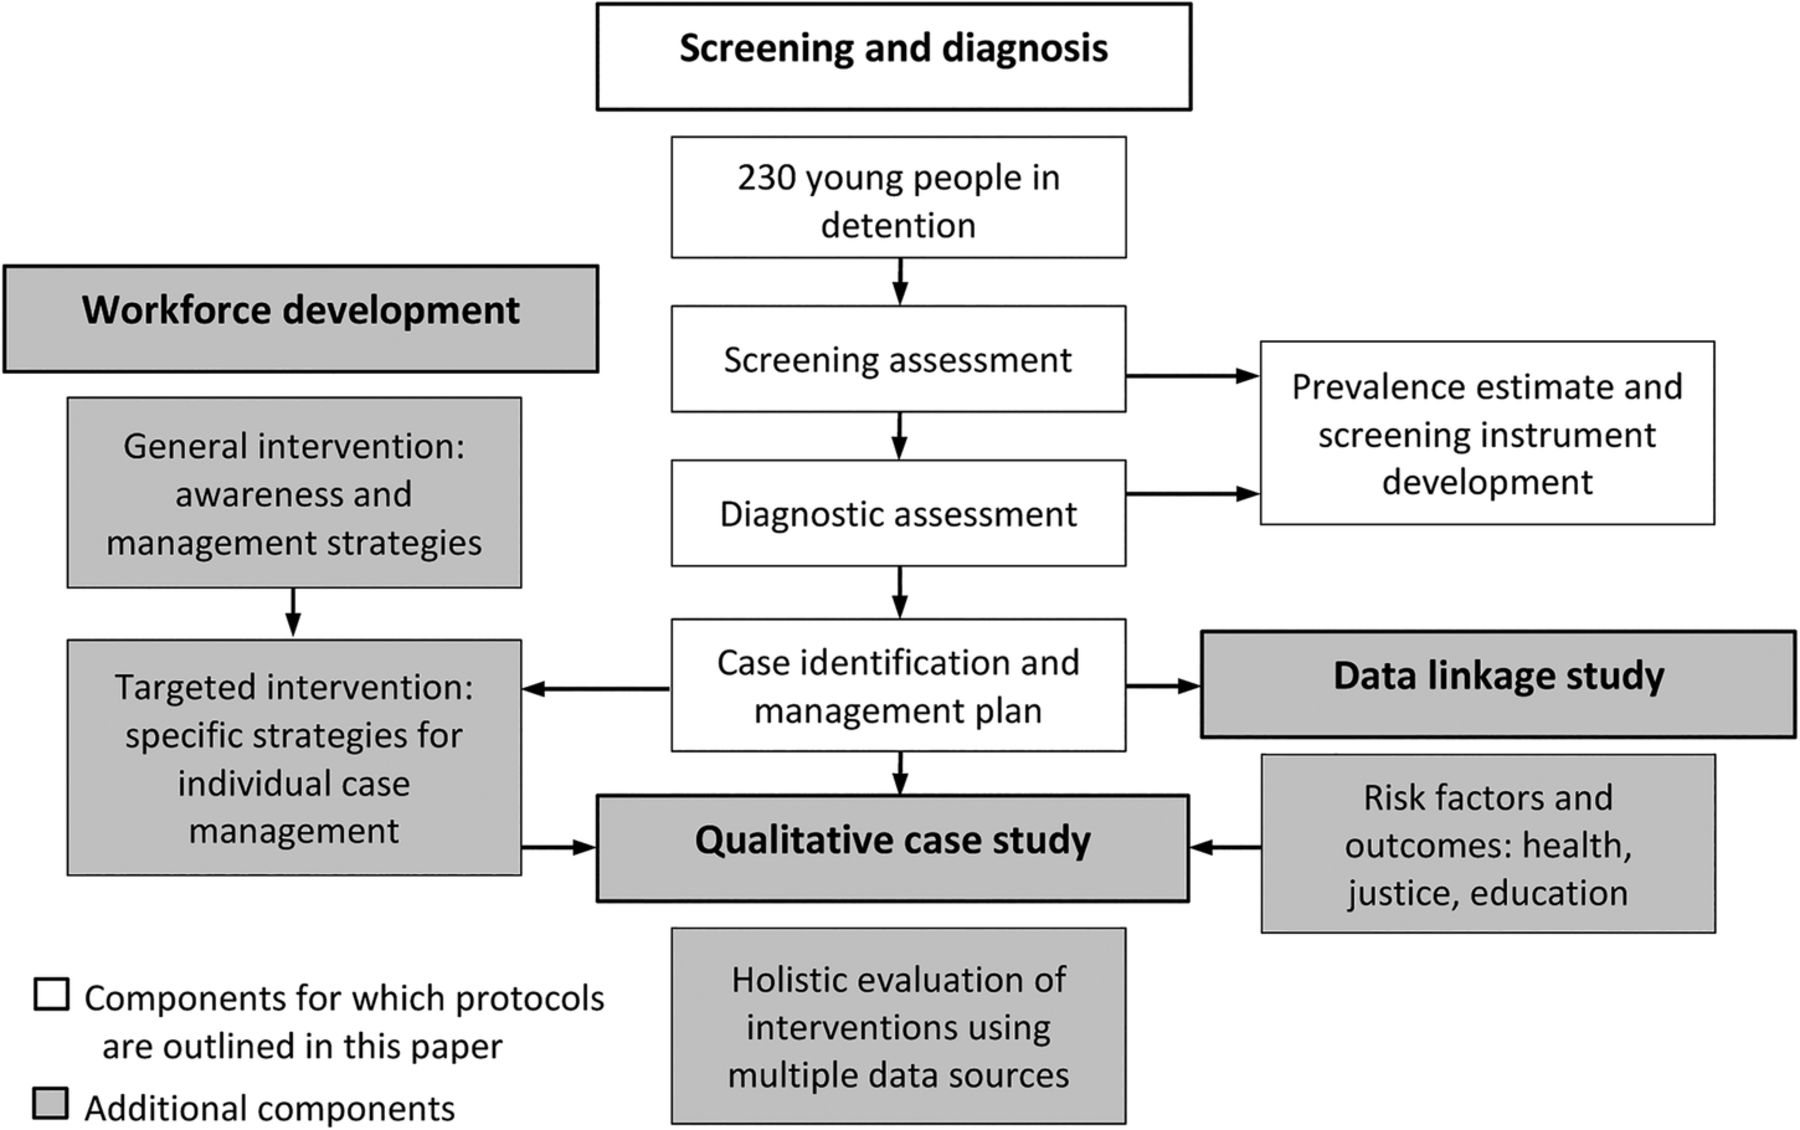 Study protocol for screening and diagnosis of fetal alcohol